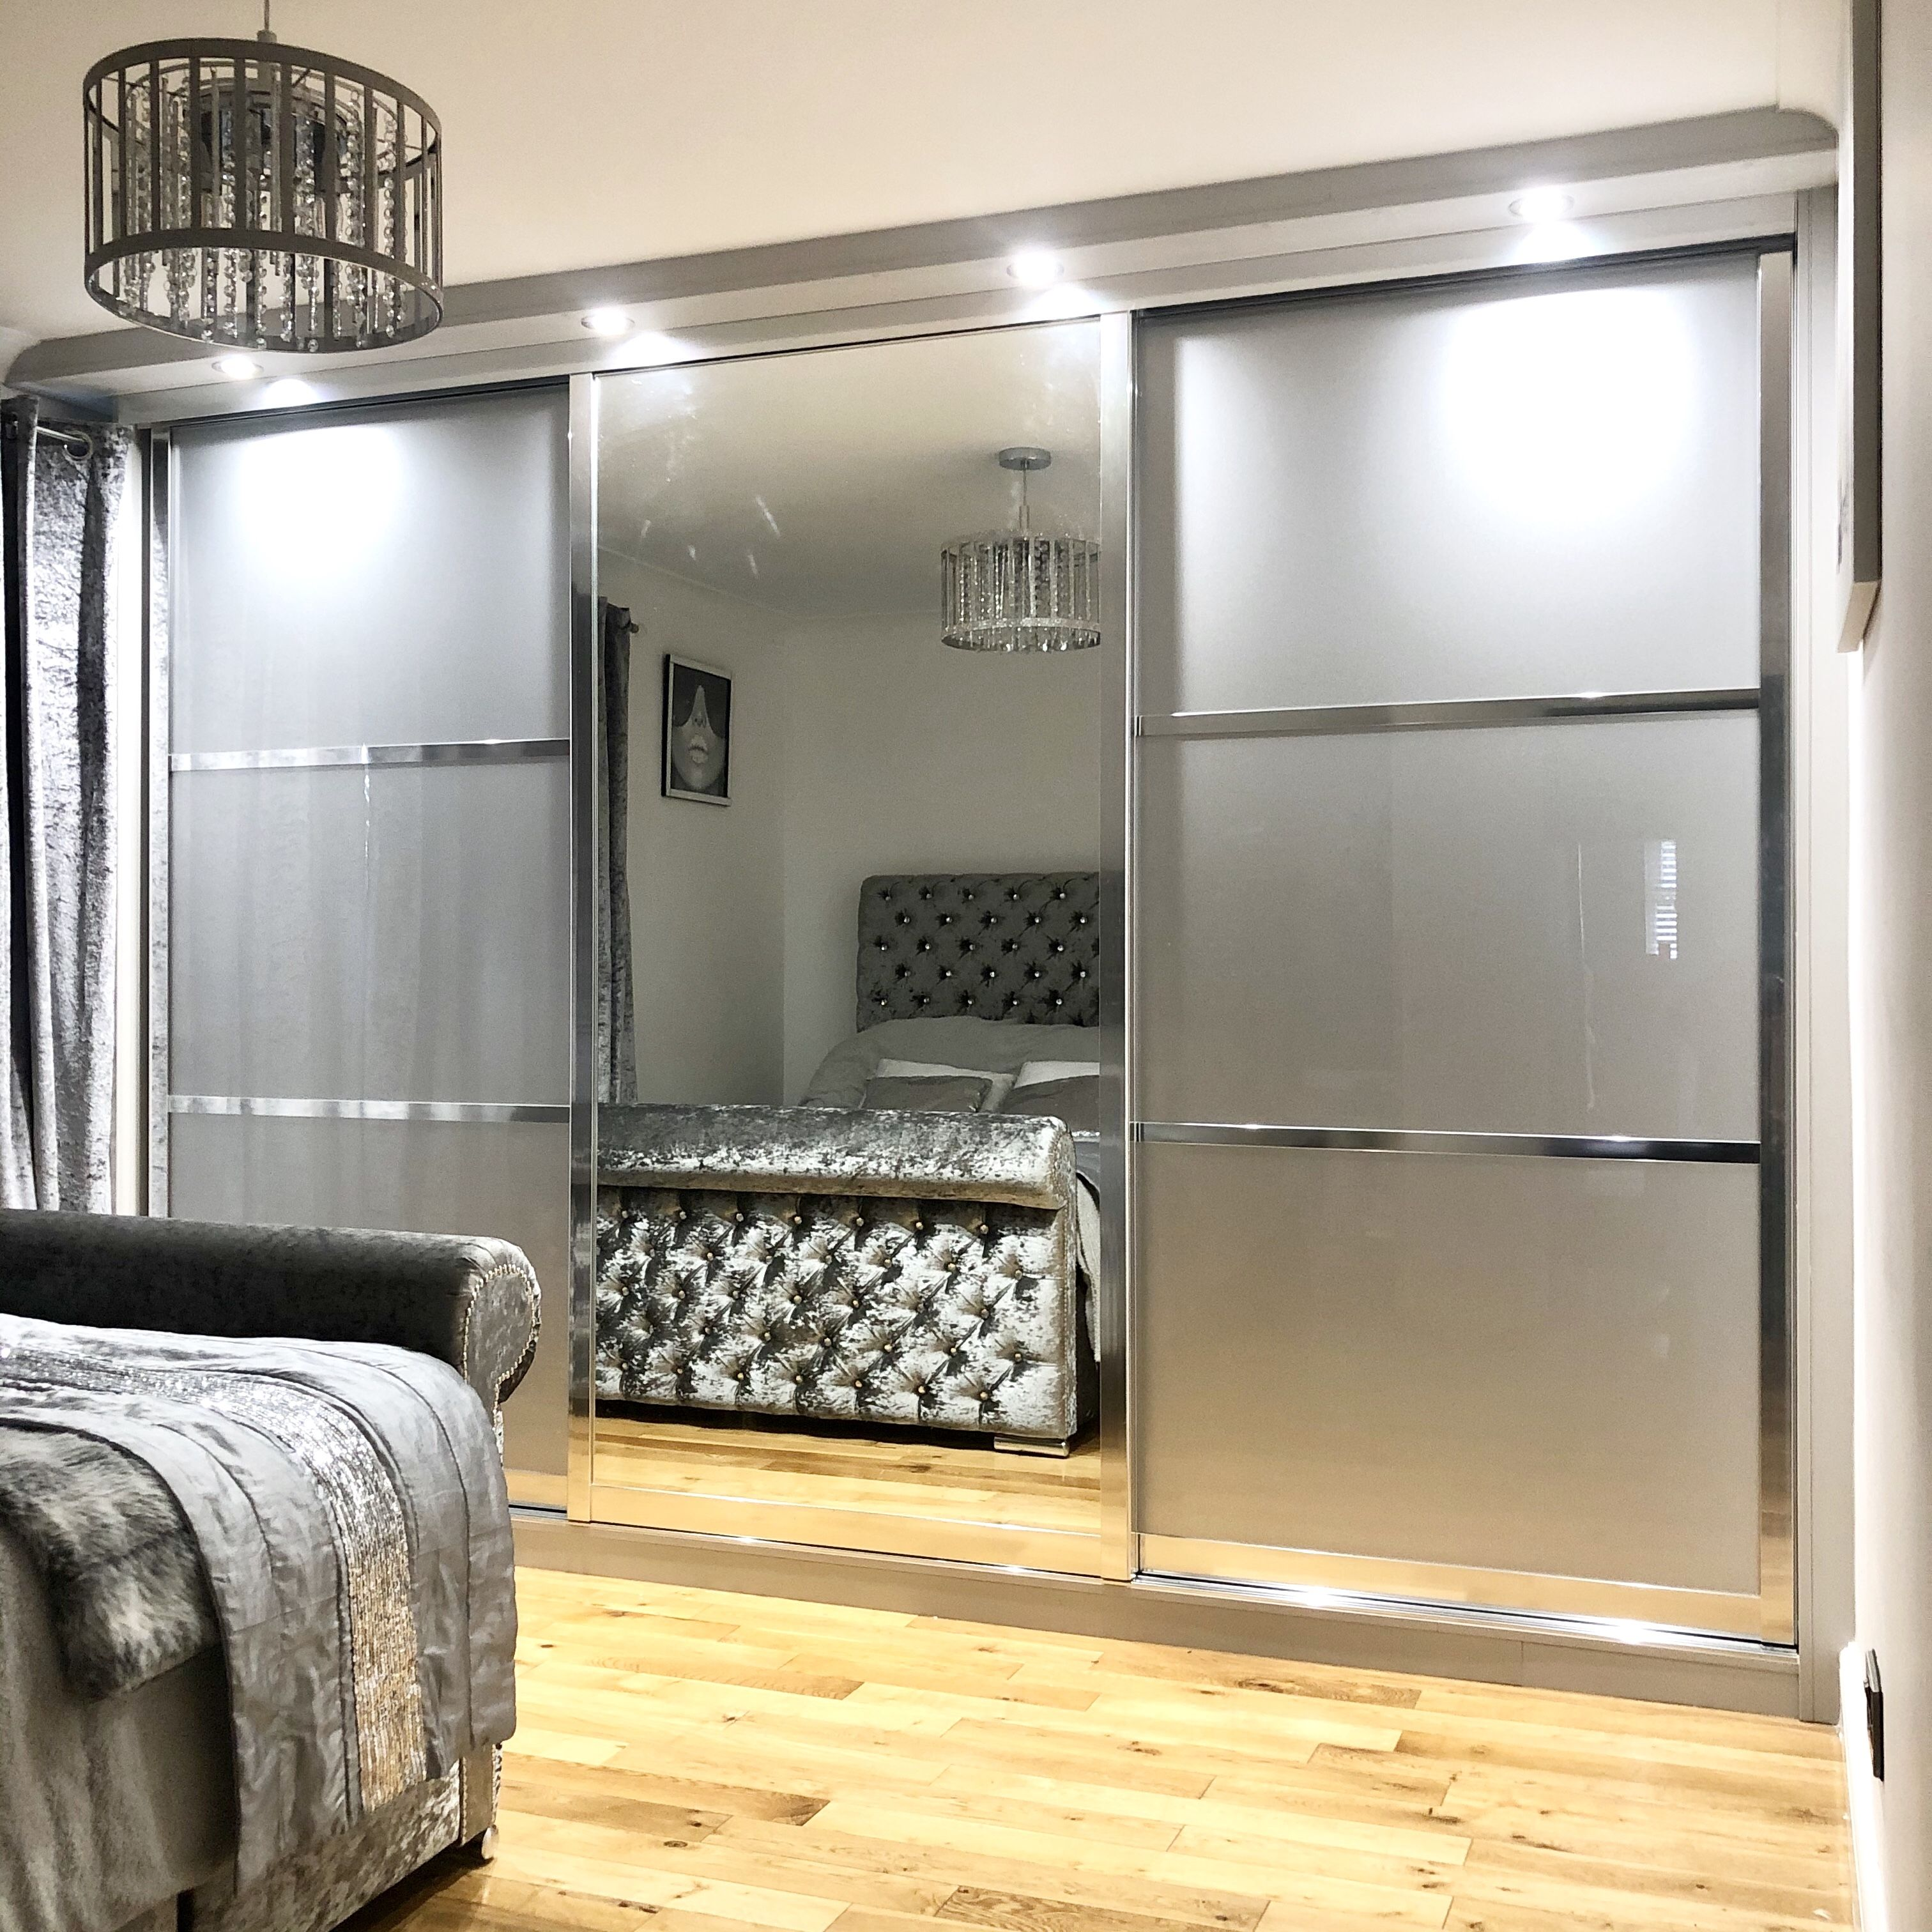 Sparkle Silver & Mirror sliding fitted wardrobes by James Kilner in Sheffield. Come and visit our new Showroom in #Ponsford on London road #sheffield #fittedwardrobes #bedroom #bedroomdecor #style  #slidingdoor #homedecor #jameskilner